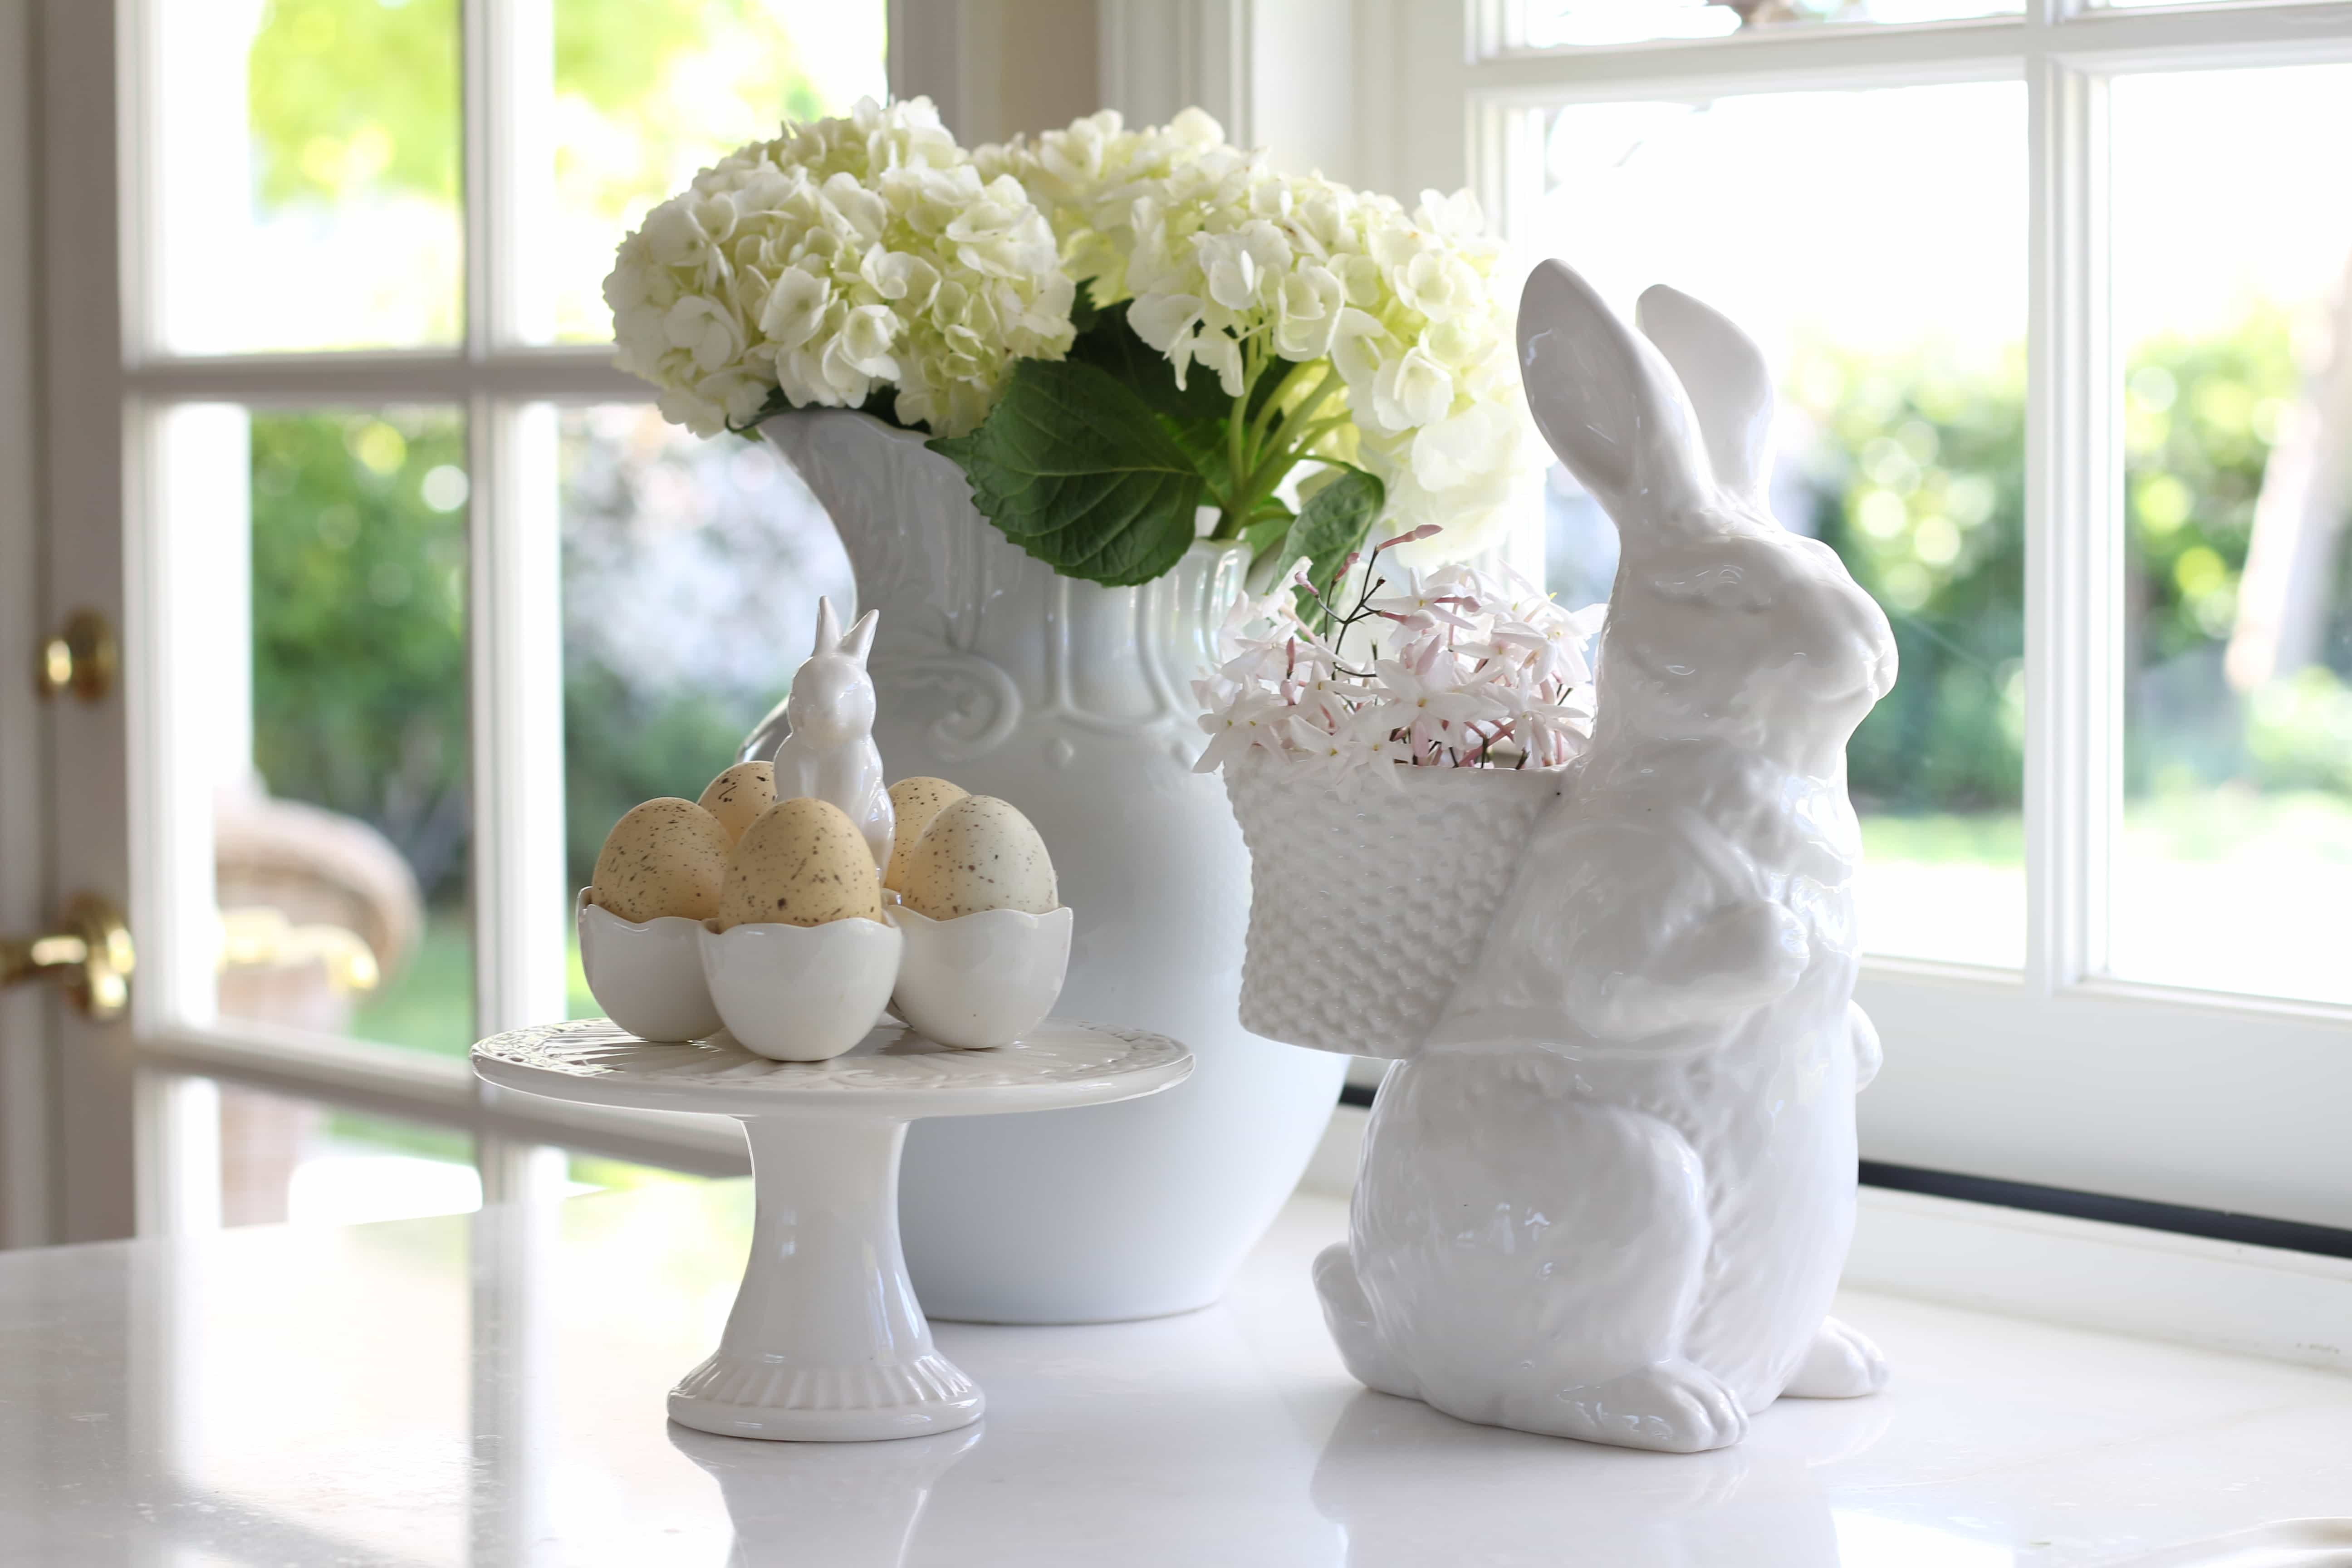 bunnies-easter-decor